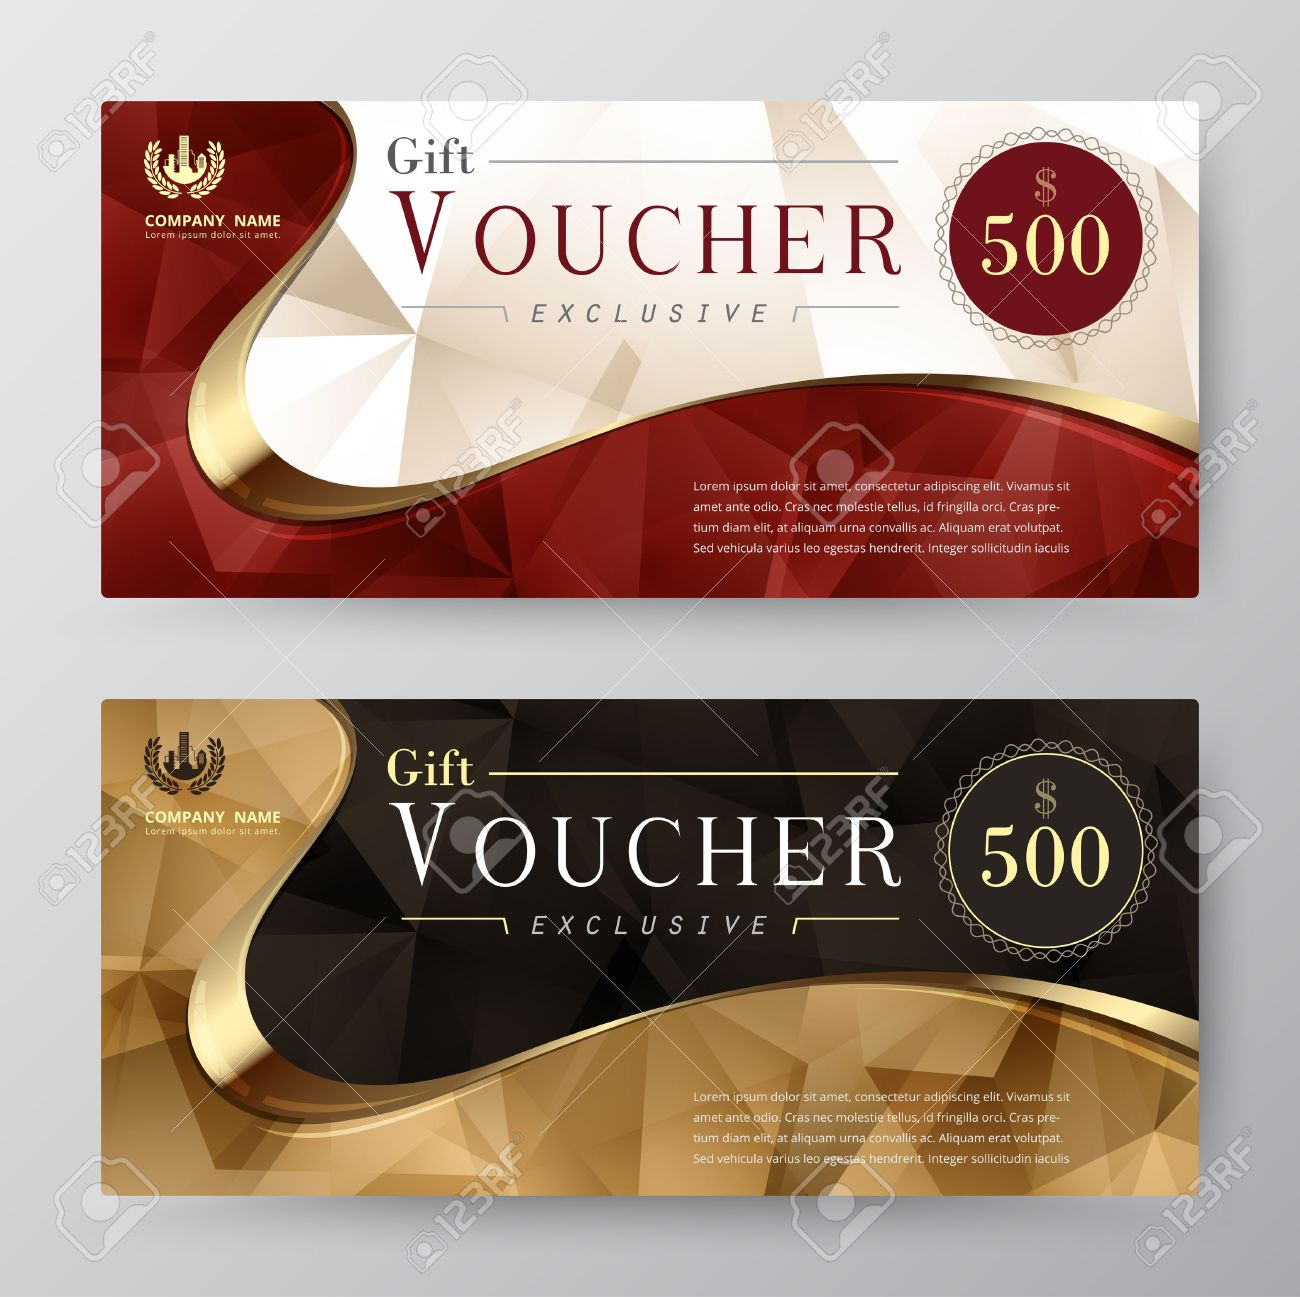 Luxury gift voucher template. promotion card, Coupon design. vector stock. - 48191692